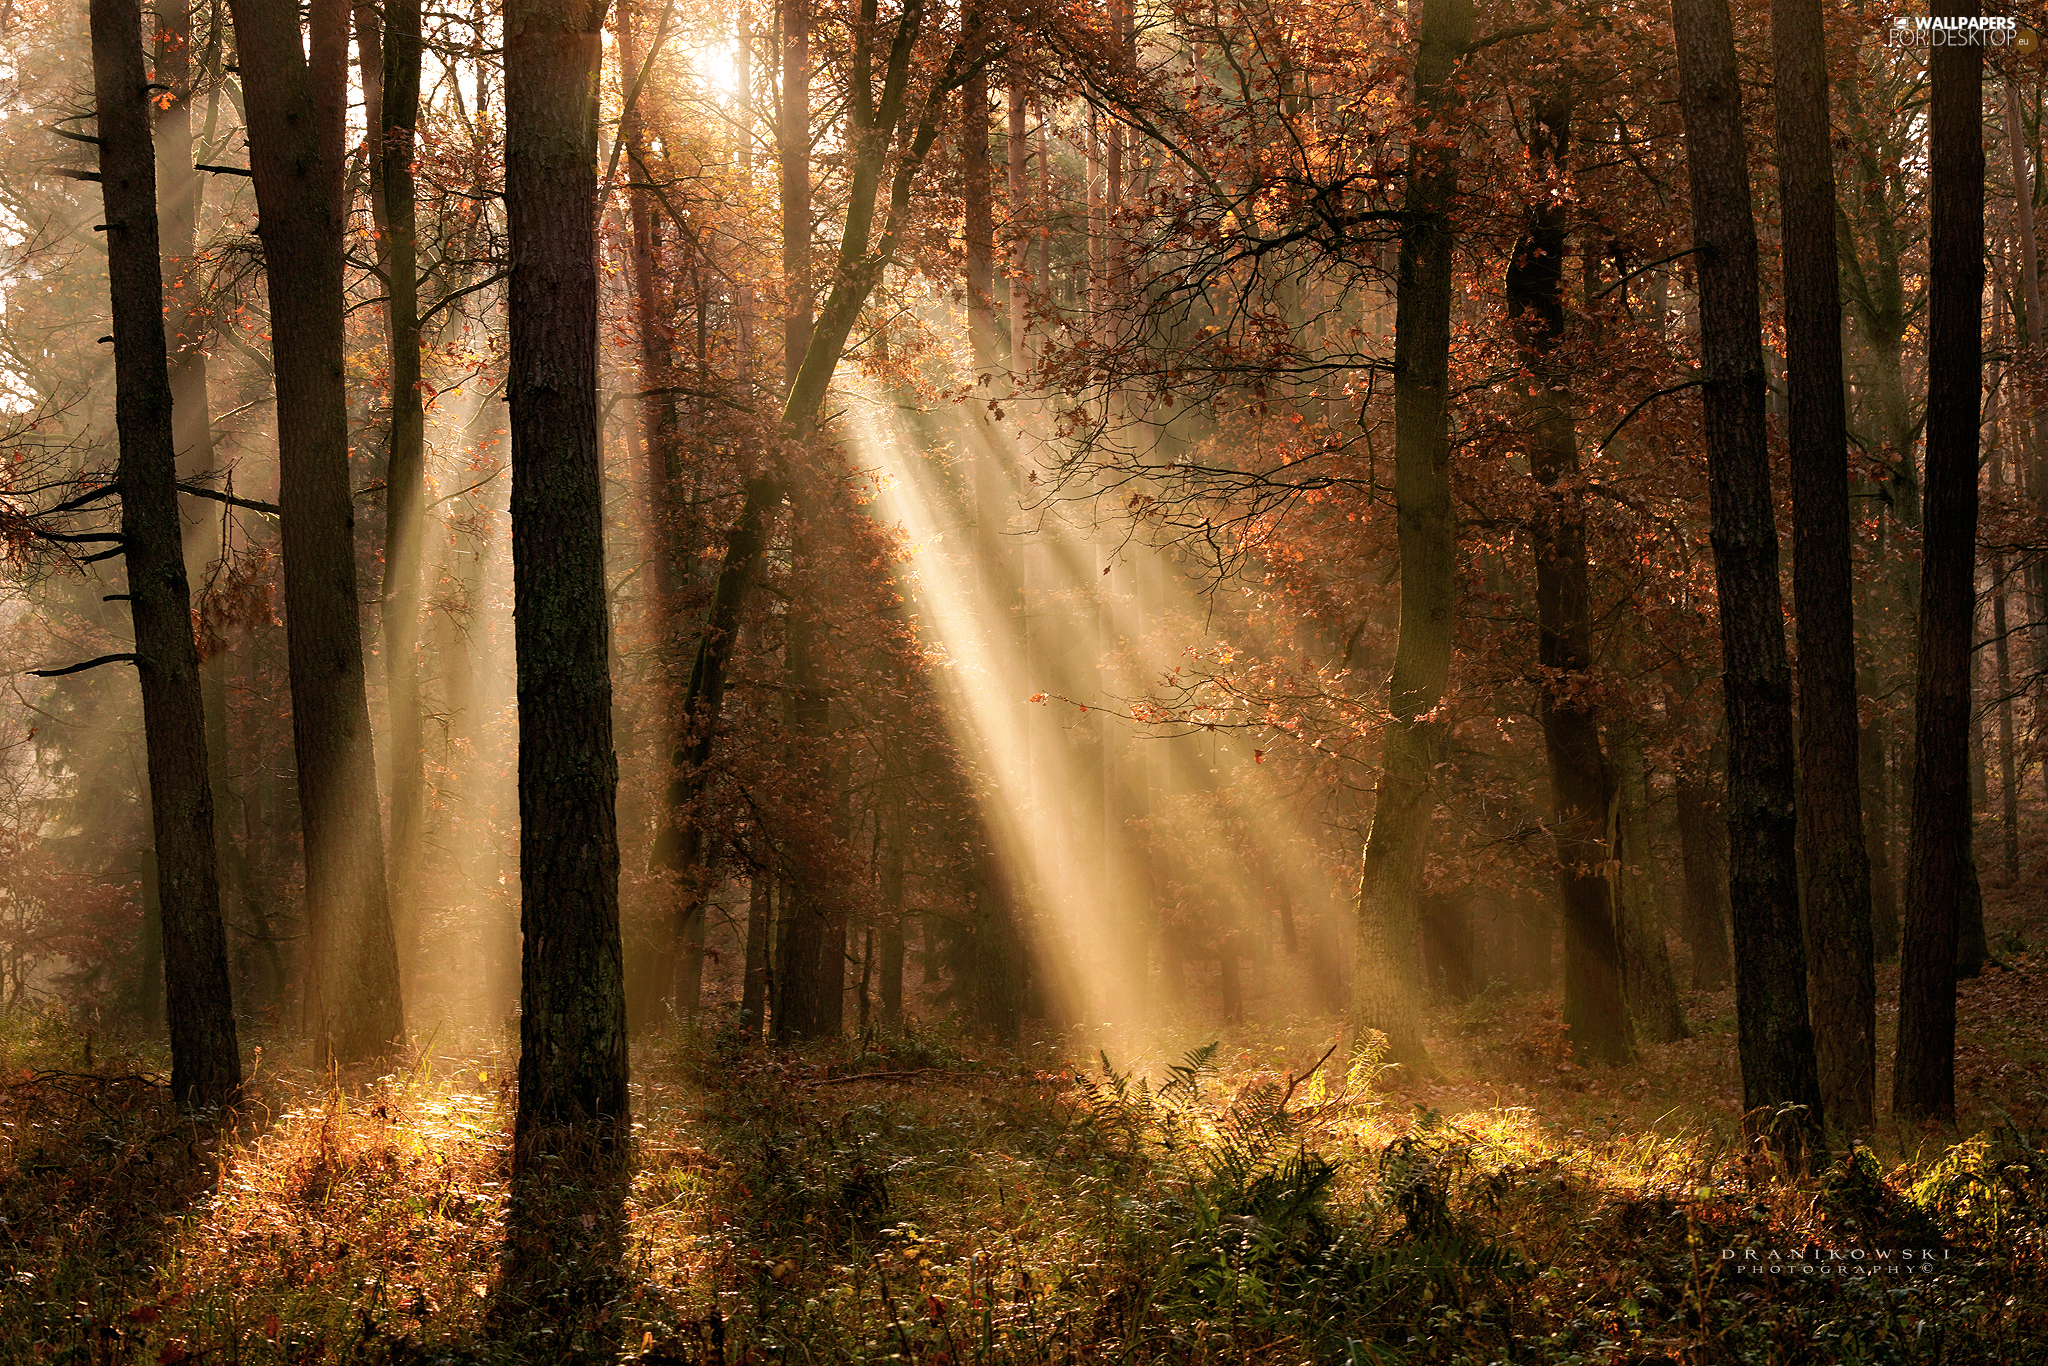 light breaking through sky, autumn, viewes, forest, trees